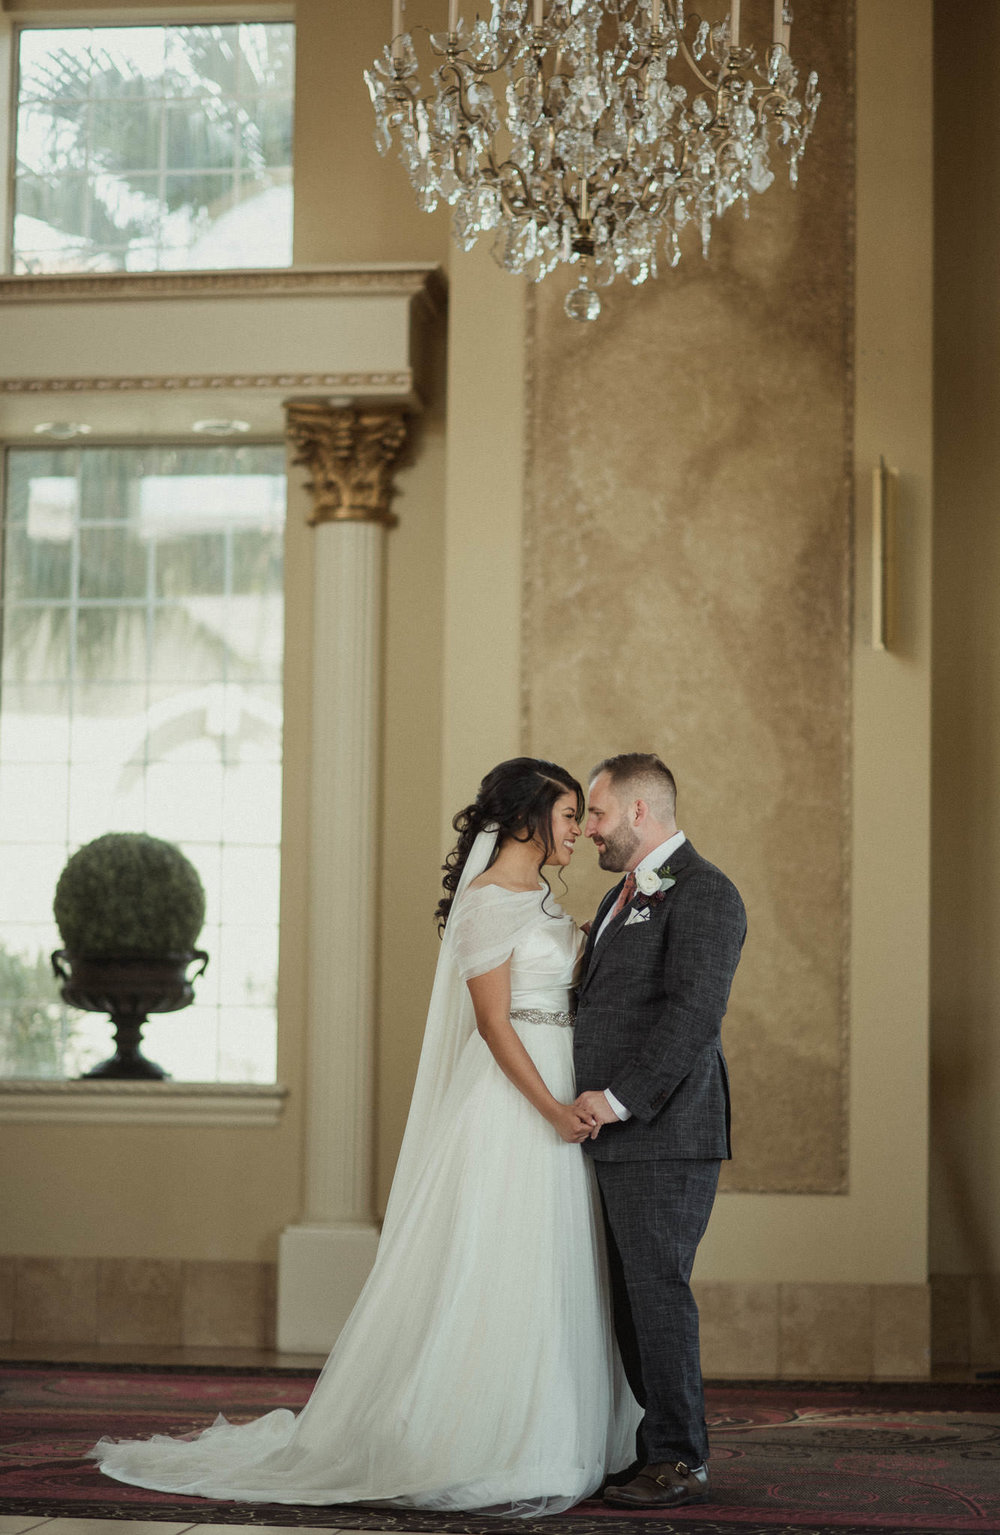 allison-tim-wedd-sm-41.jpg